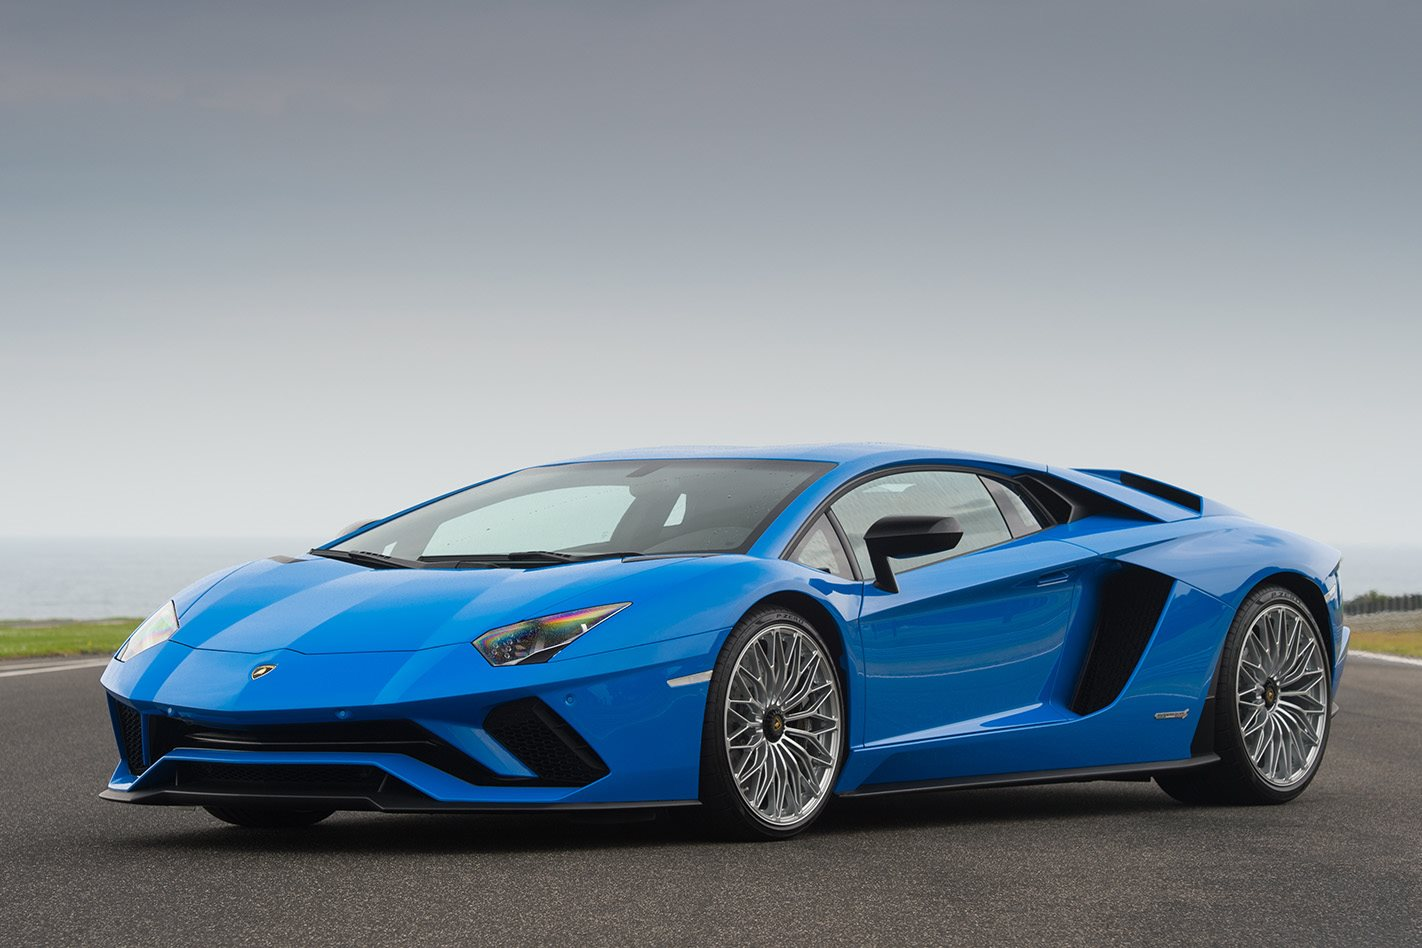 2017 lamborghini aventador s review wheels. Black Bedroom Furniture Sets. Home Design Ideas